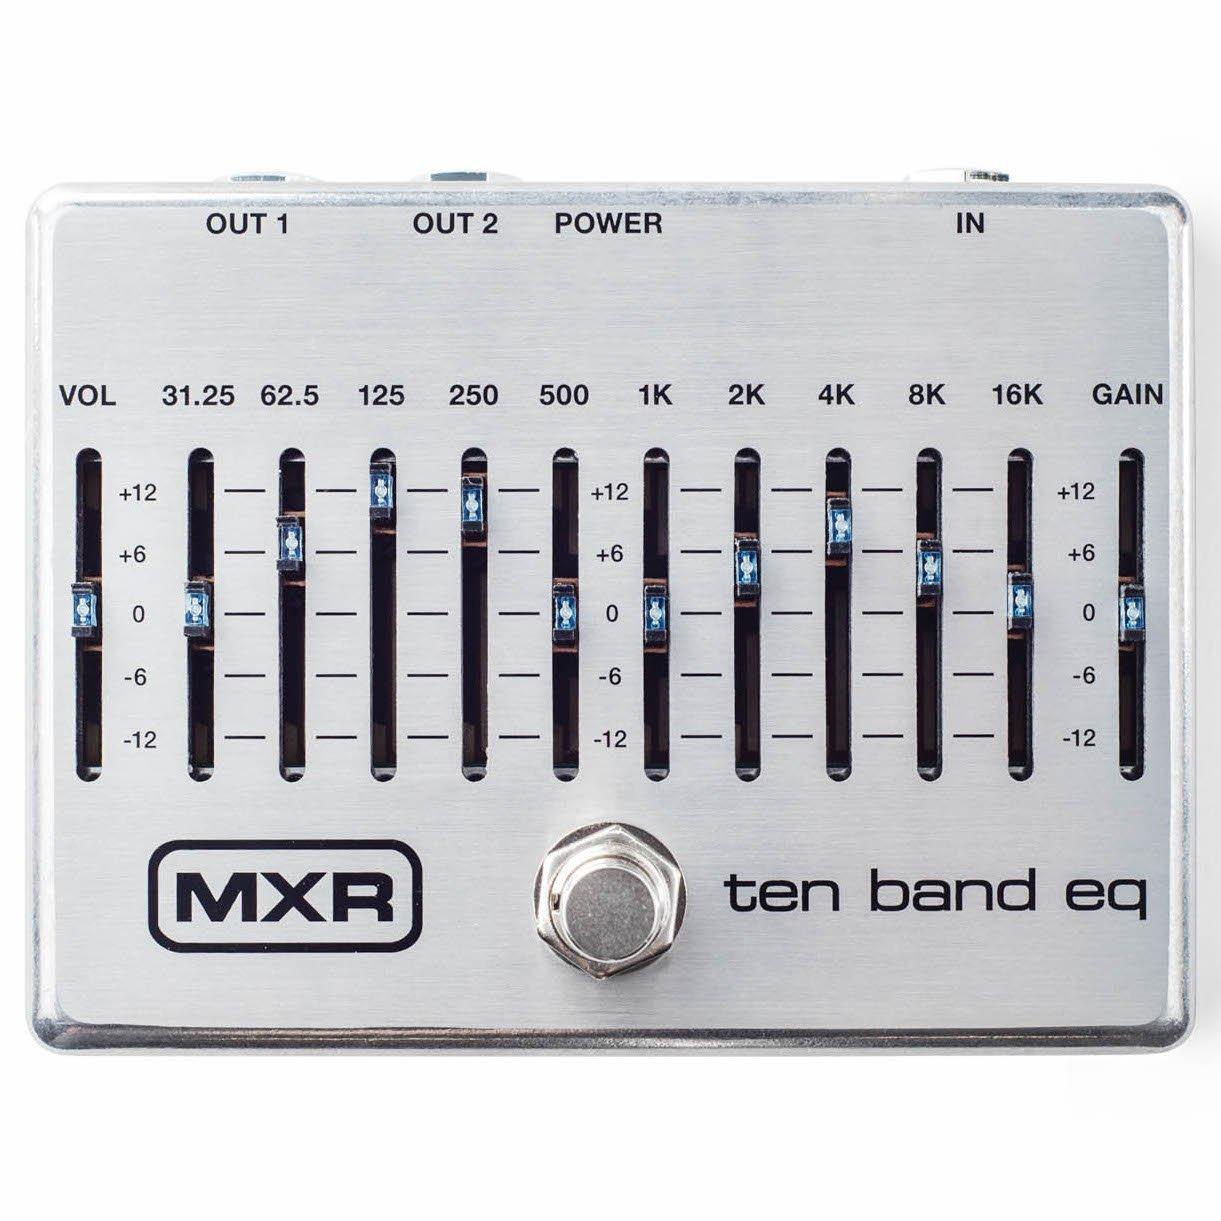 MXR M108S 10-Band Graphic EQ Pedal